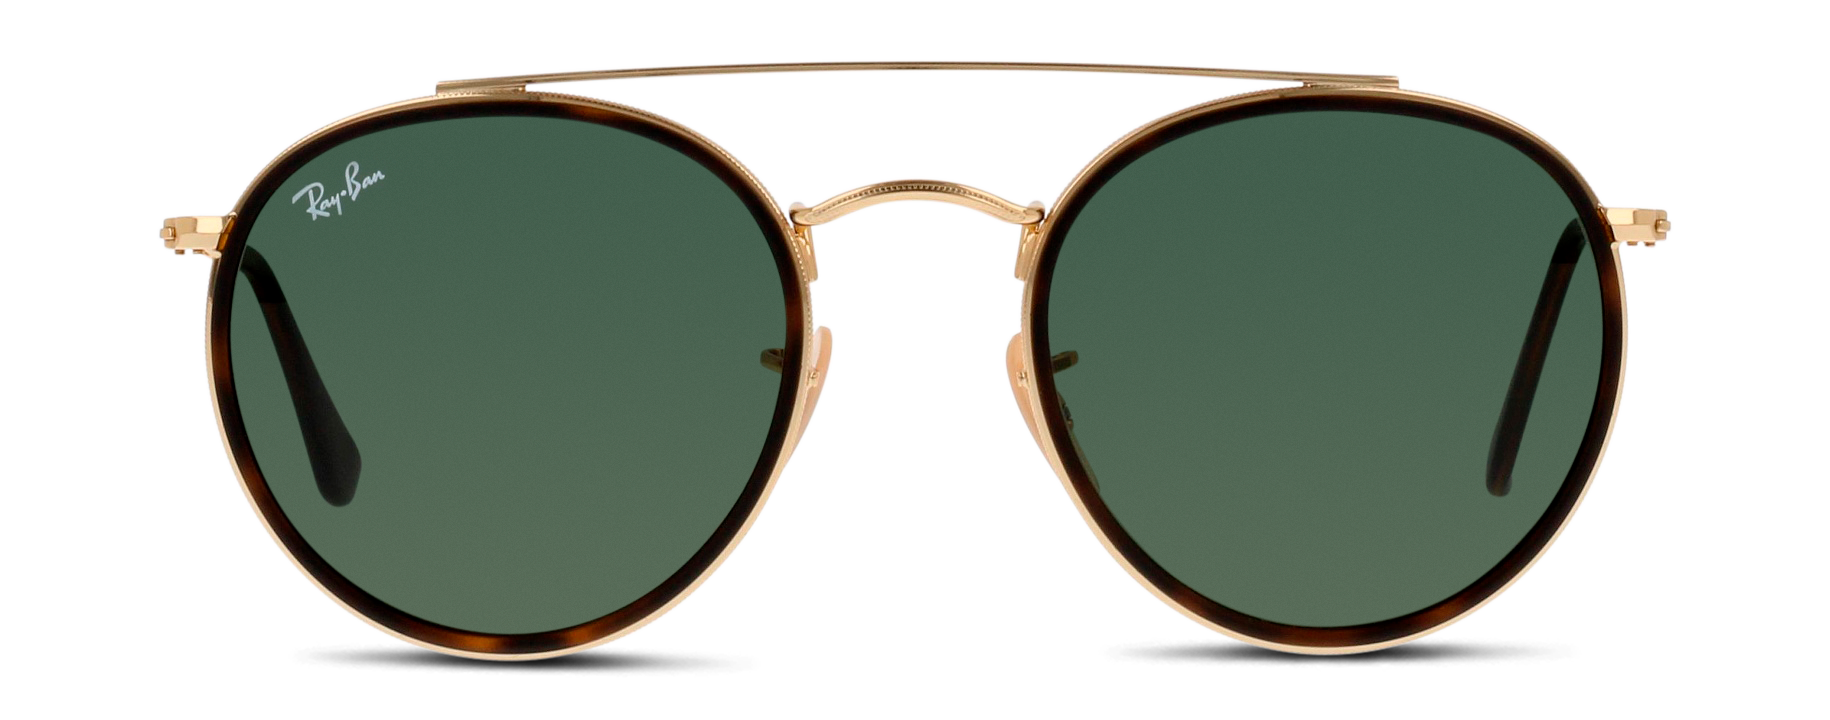 Front Ray-Ban Ray-Ban 3647N 001 51/22 Goud/Groen